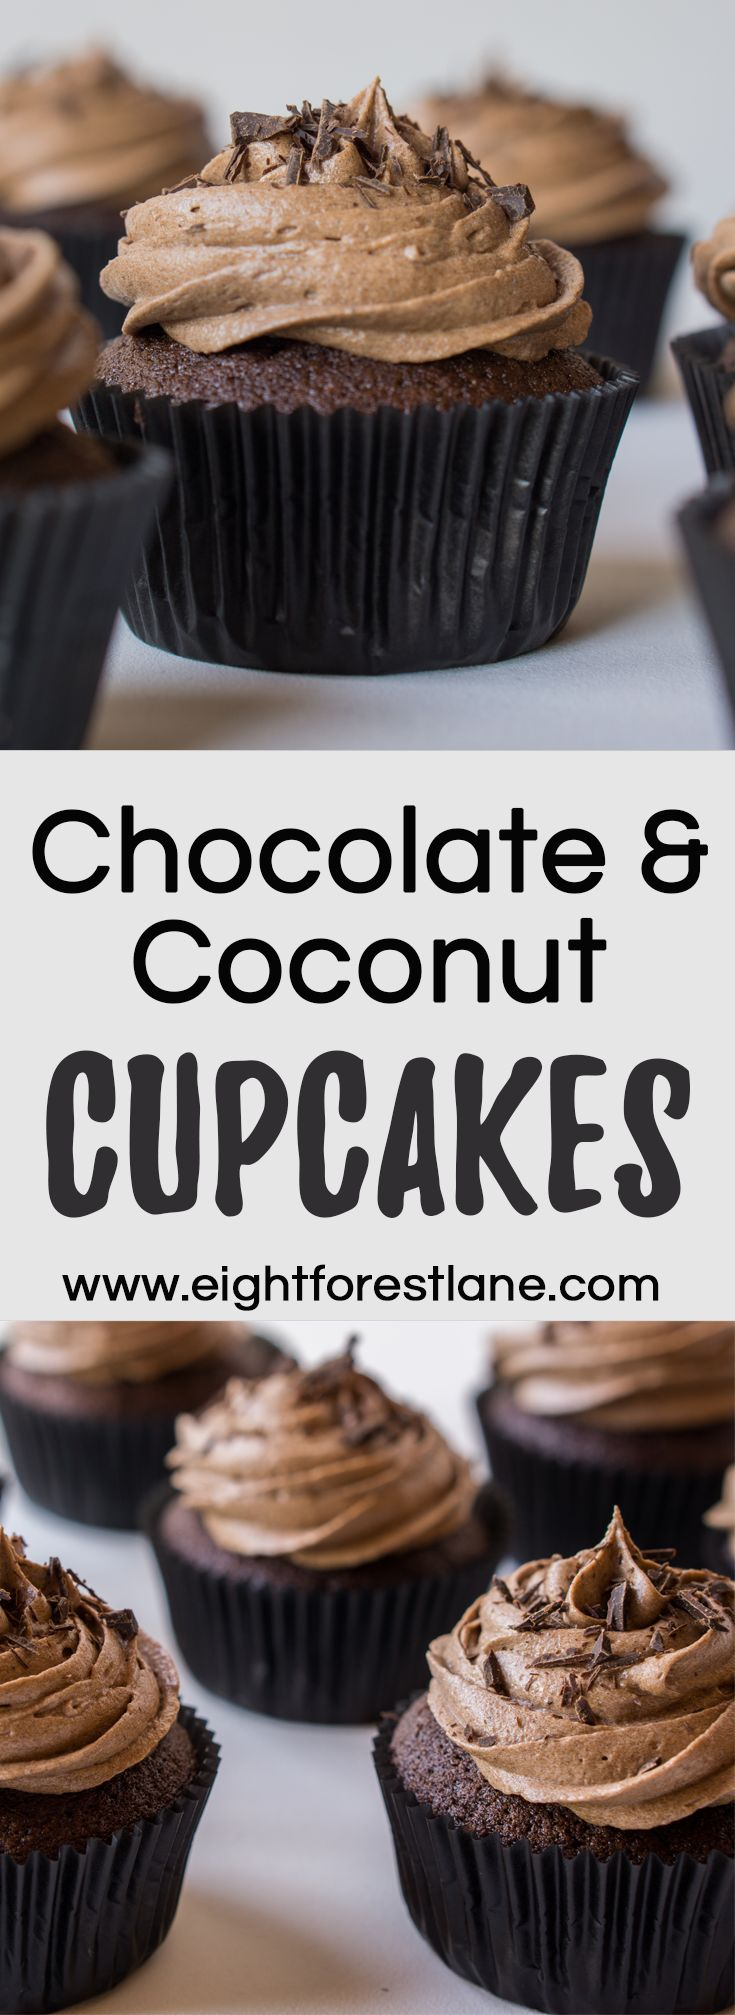 Chocolate & Coconut Dairy-Free Cupcakes